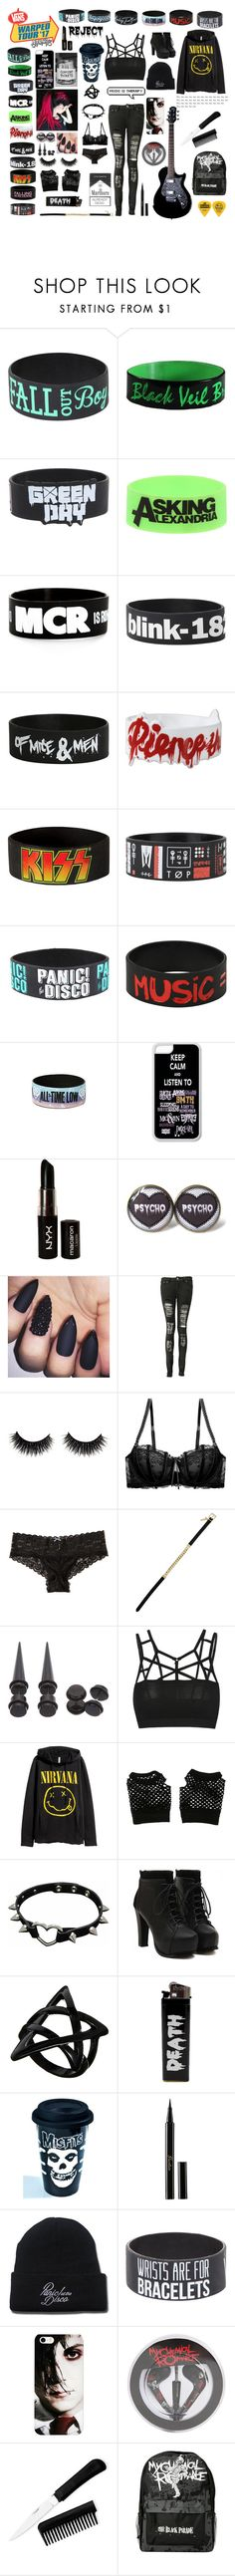 """Warped tour"" by frankie-and-gee ❤ liked on Polyvore featuring Hot Topic, NYX, Boohoo, Heidi Klum, Hollister Co., H&M, ASOS, Sourpuss and Guerlain"